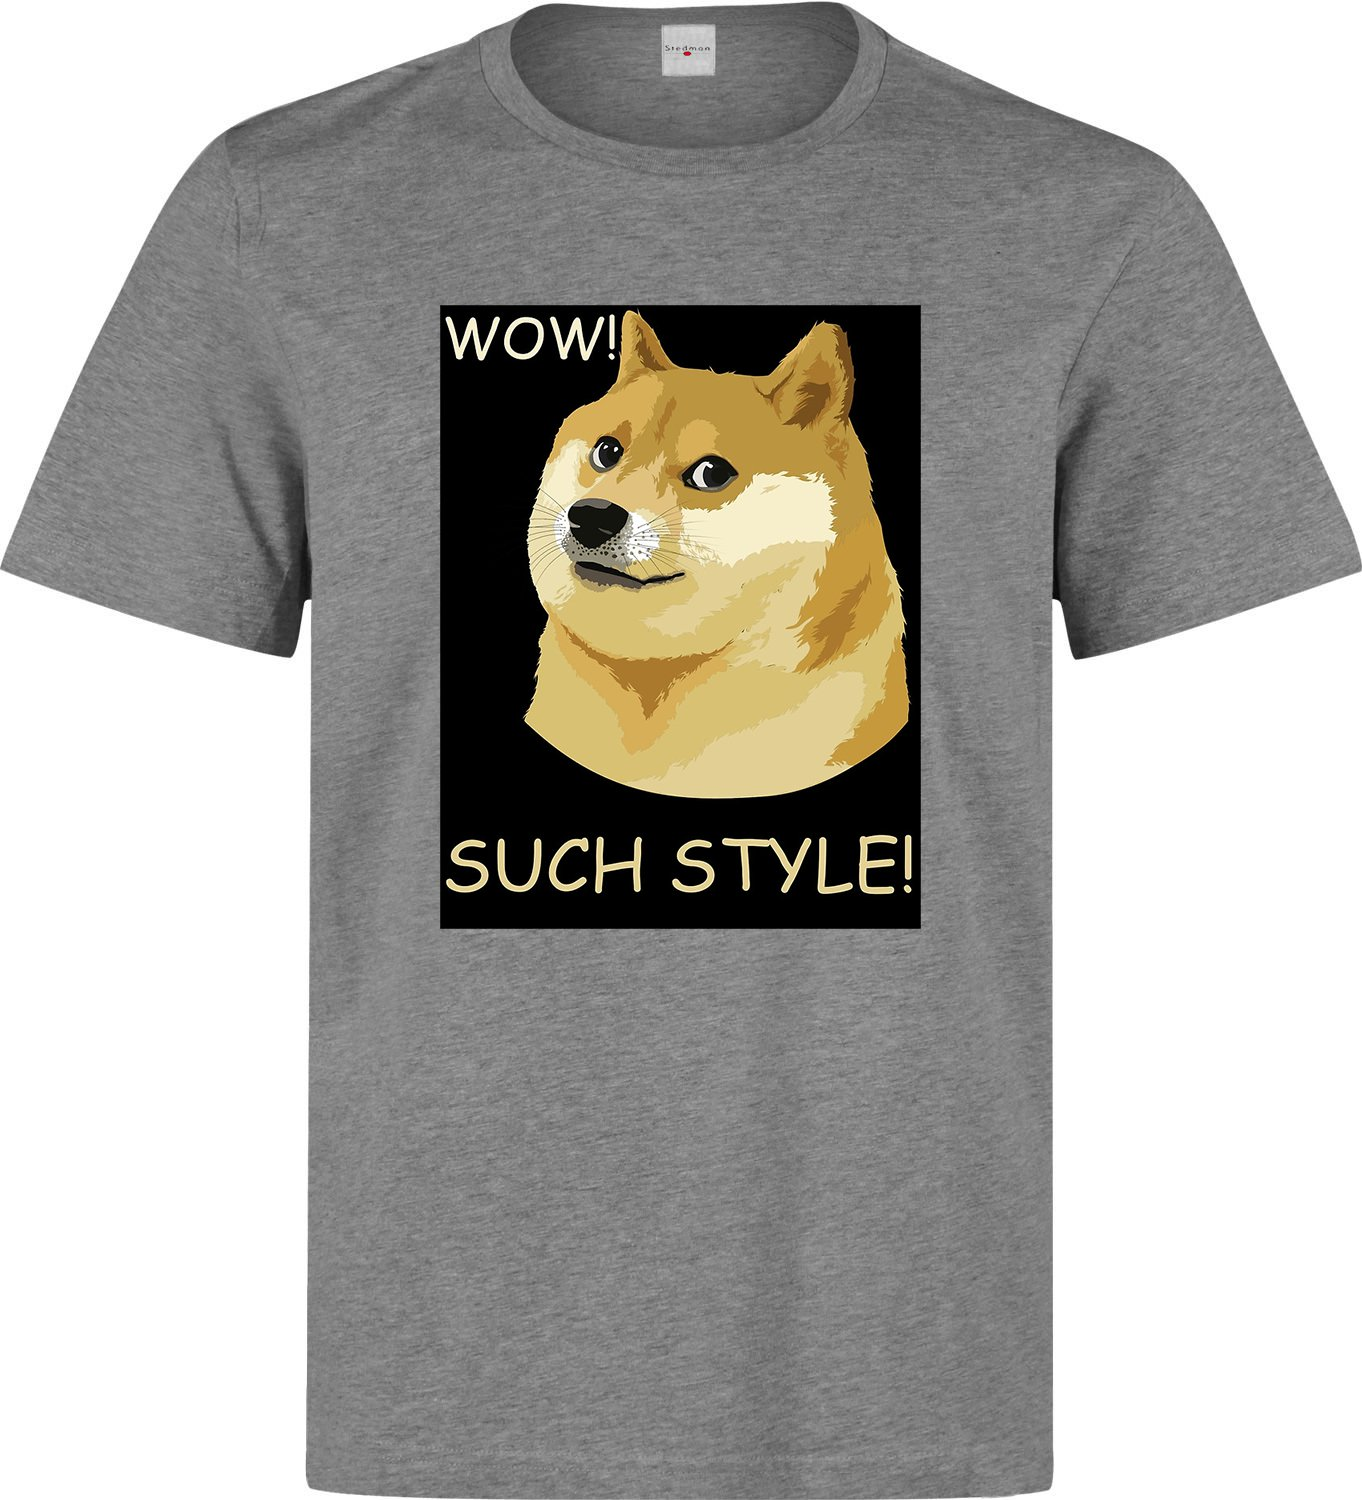 Doge meme funny men printed cotton gray t-shirt size M